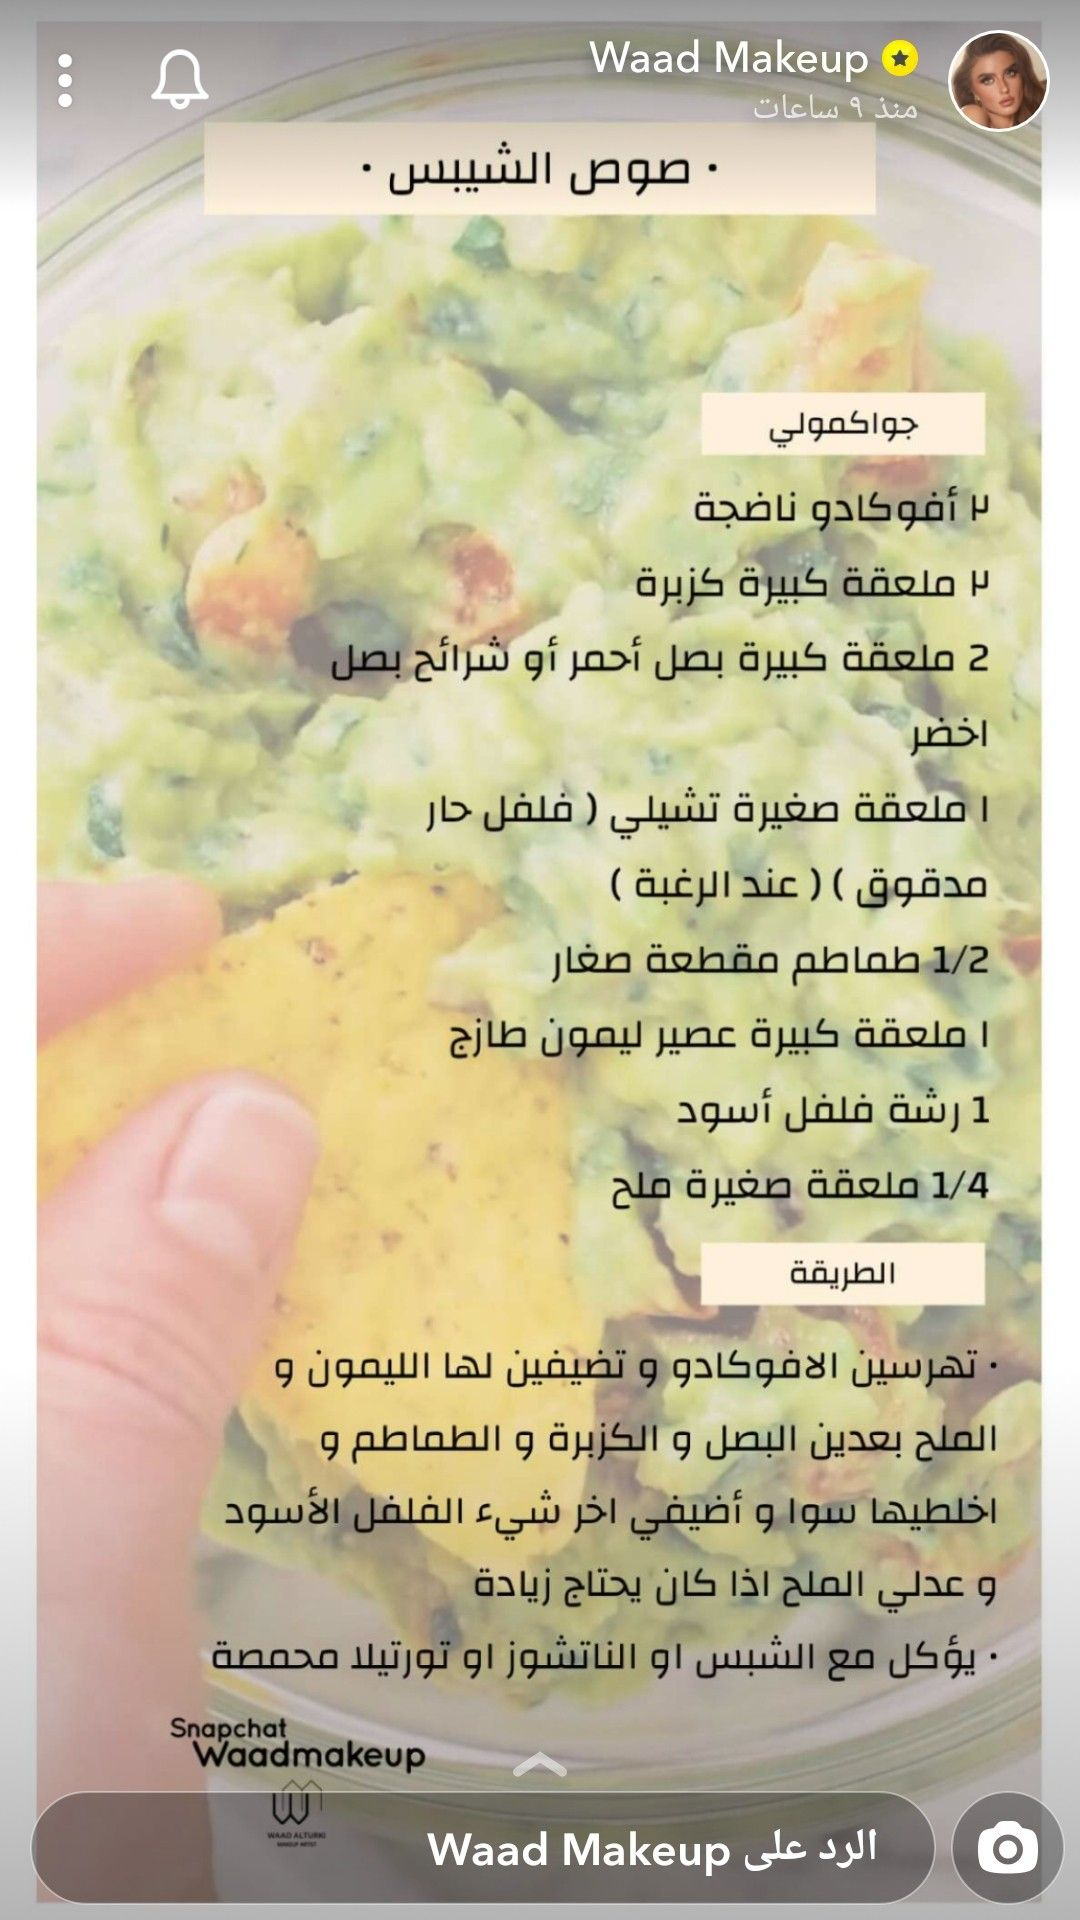 Pin By Hnoreen On Food طبخ Food Food And Drink Yummy Food